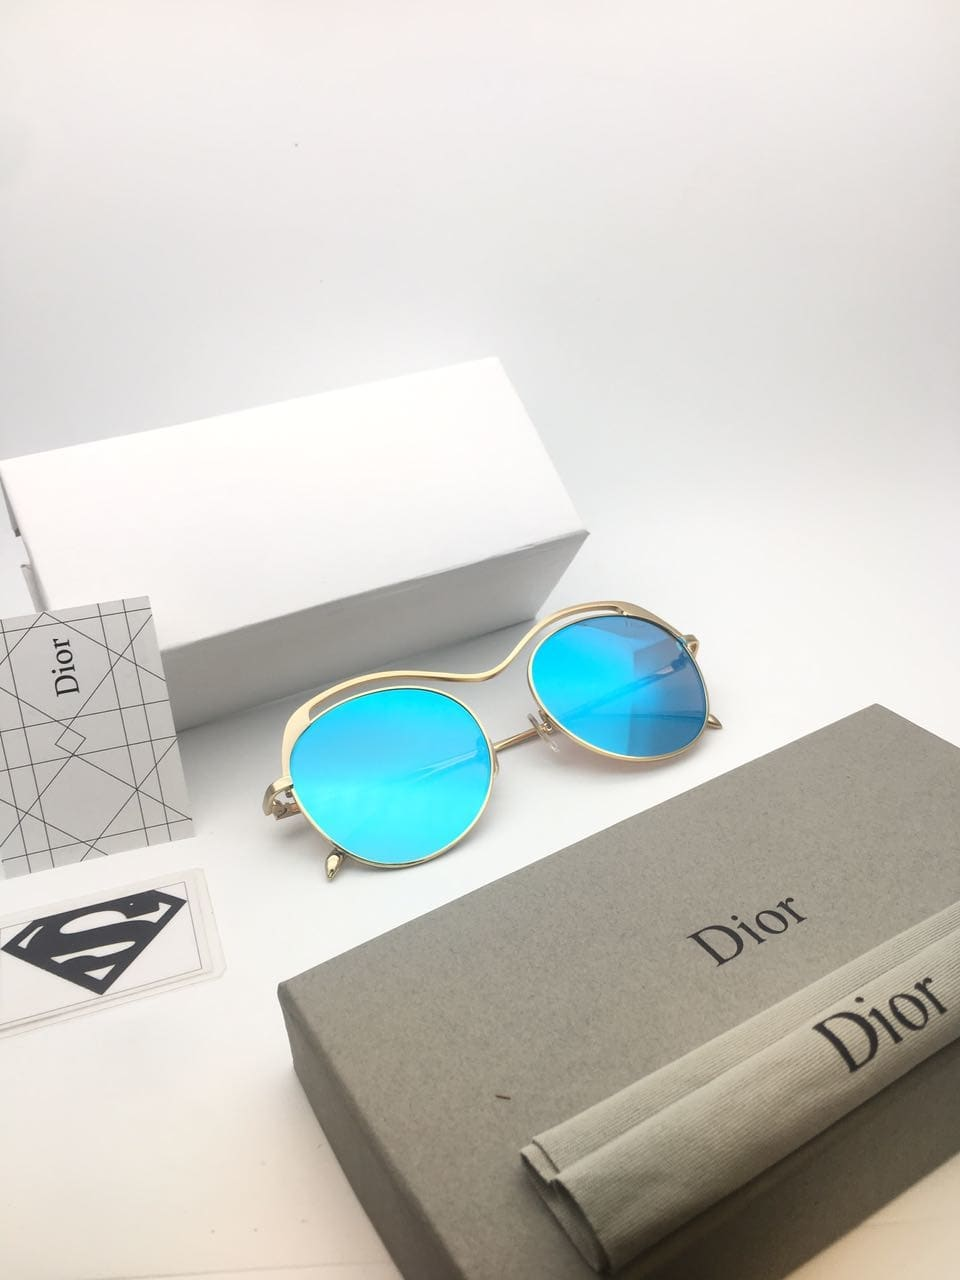 #dior sunglasses for order whatsapp on 7503848020 #diorsunglasses #westernwear #dior shades #thebazaar #onlineshop #women-fashion  #sunglasses#blogger